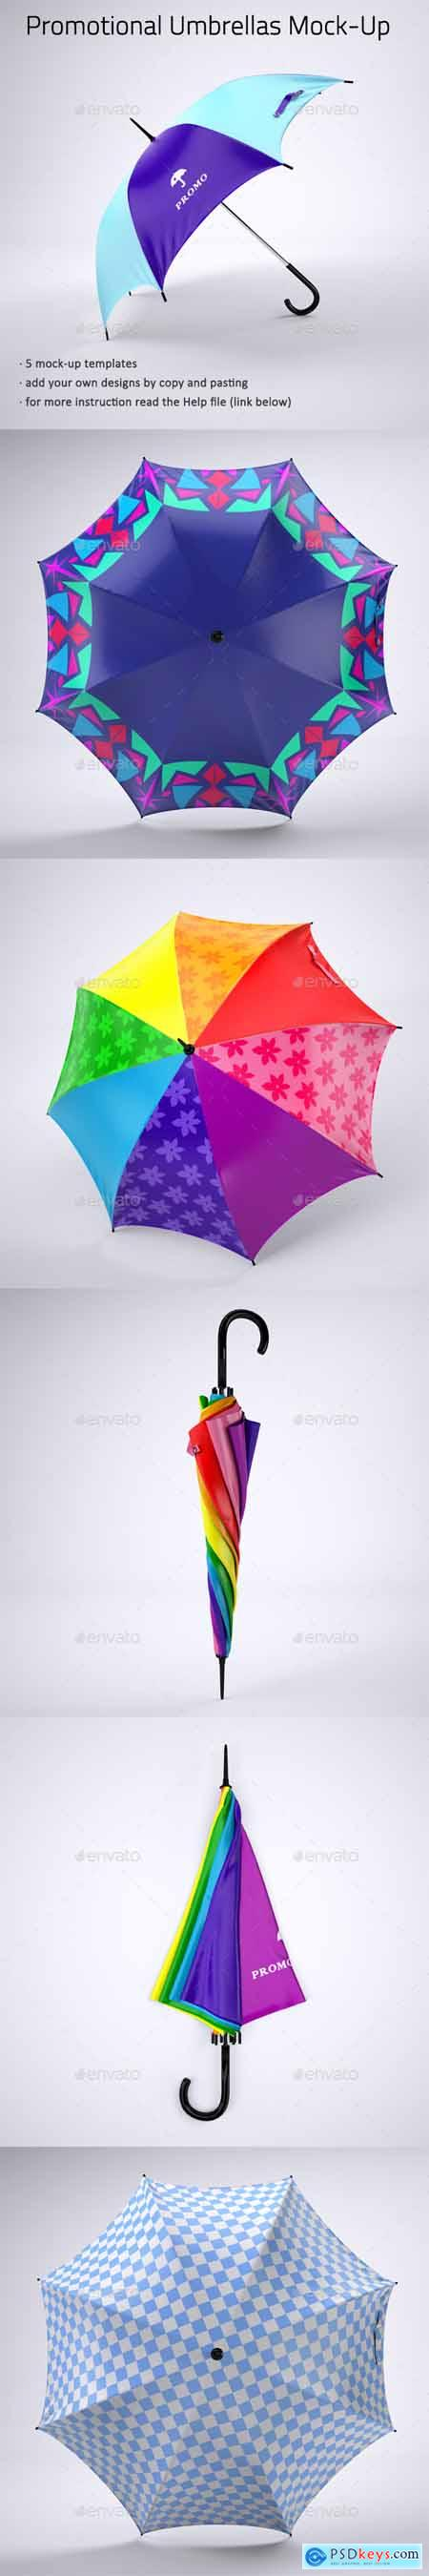 Promotional Umbrella Mock-Up 21411363